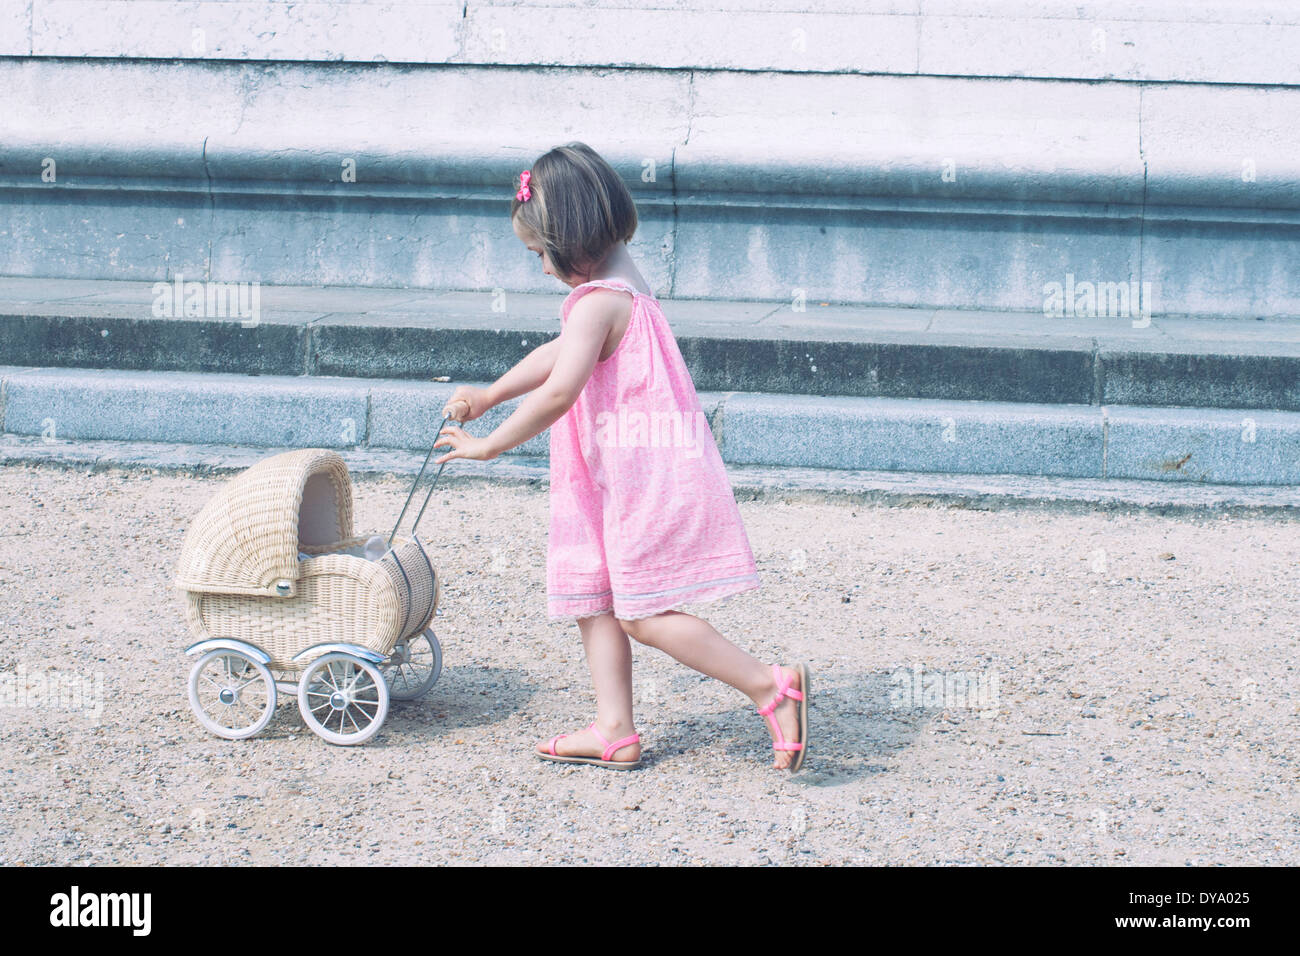 Little girl pushing miniature baby carriage - Stock Image